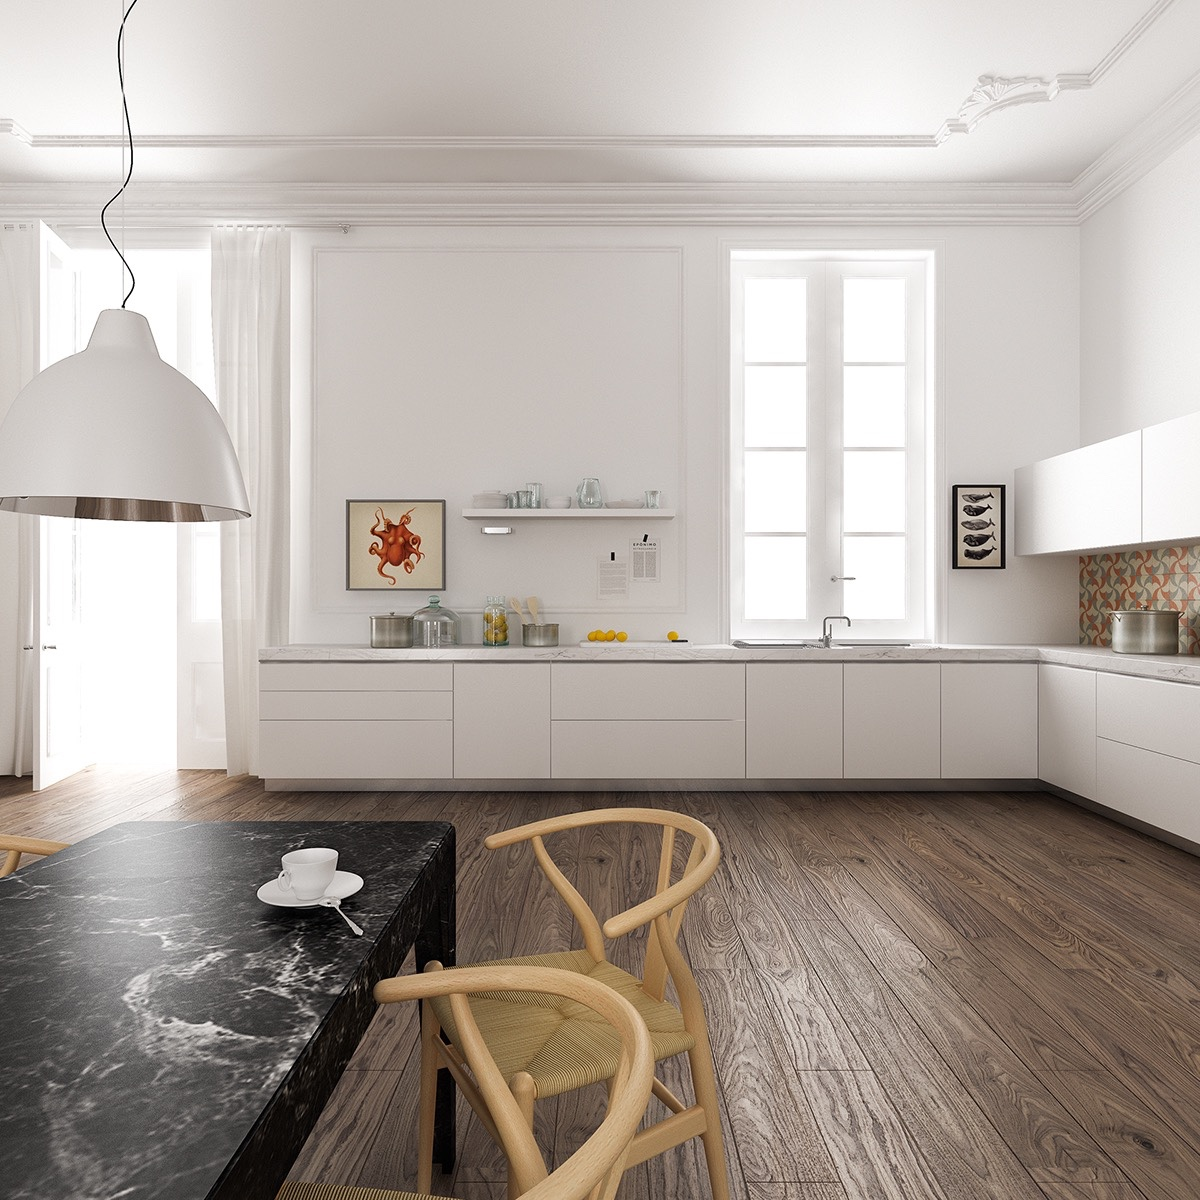 White-Kitchen-Marble-Counter-Rustic-Wood-Floors